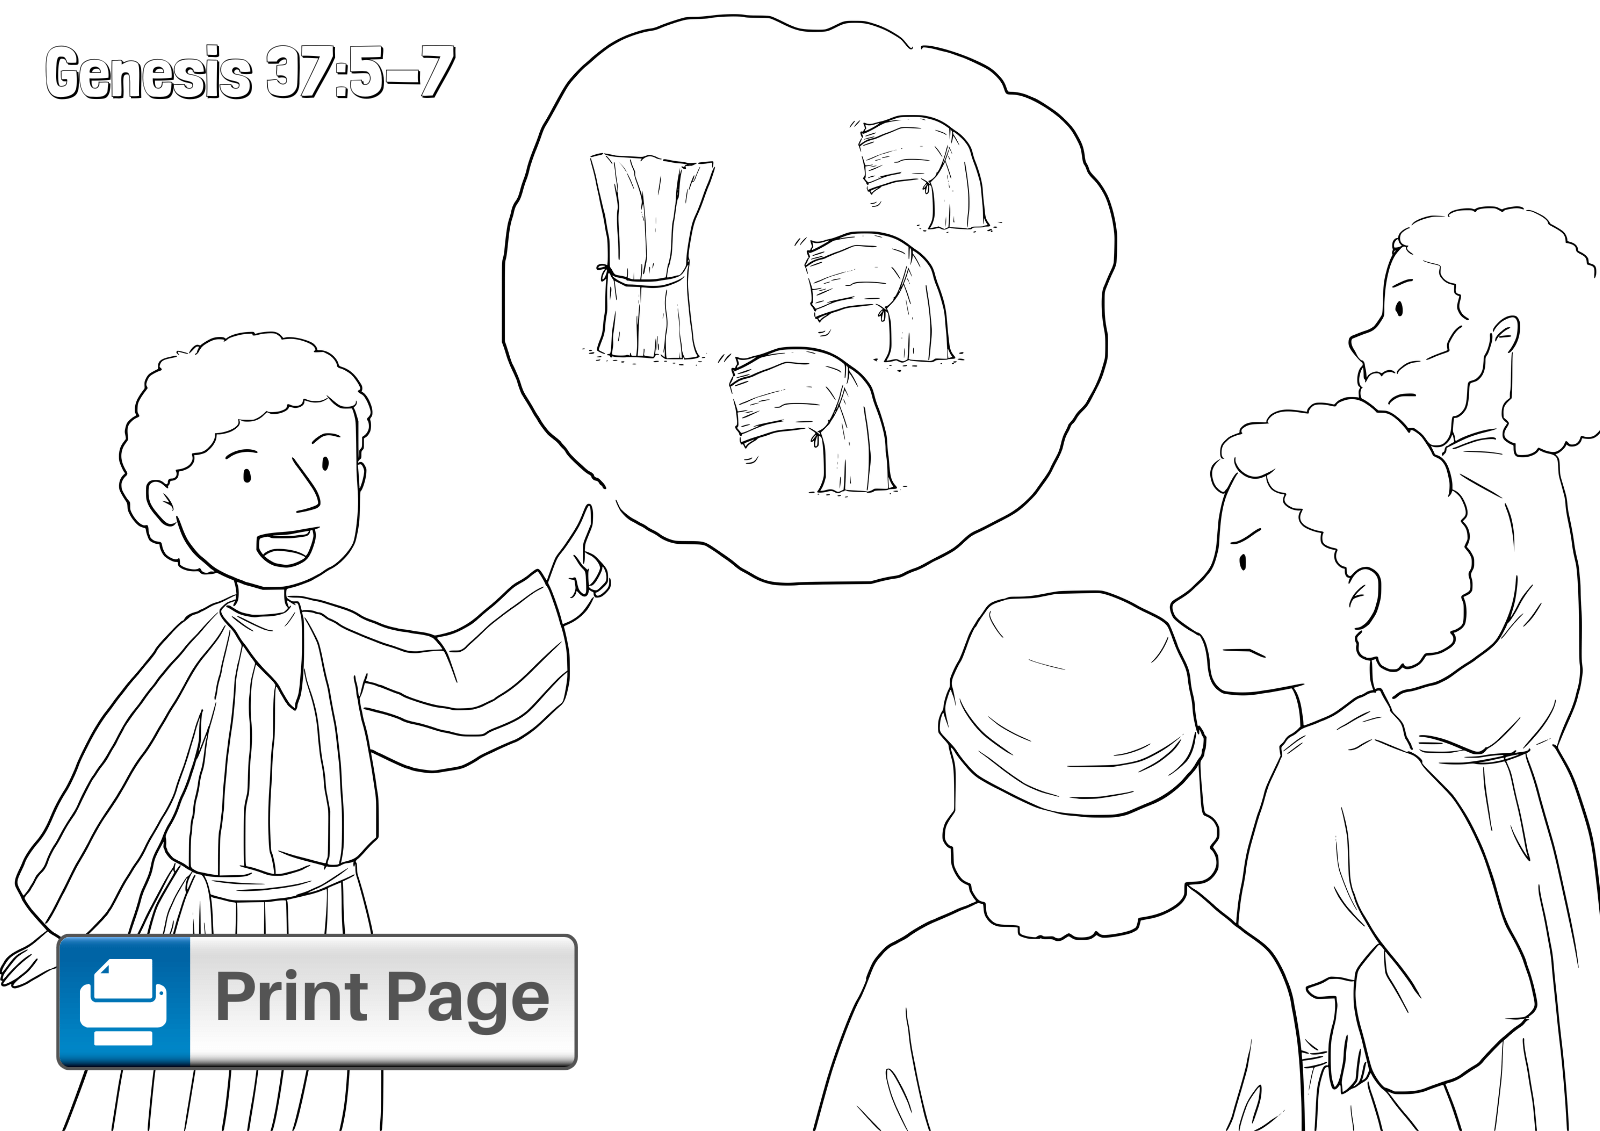 joseph the dreamer coloring pages joseph dream coloring page coloring home dreamer pages joseph the coloring